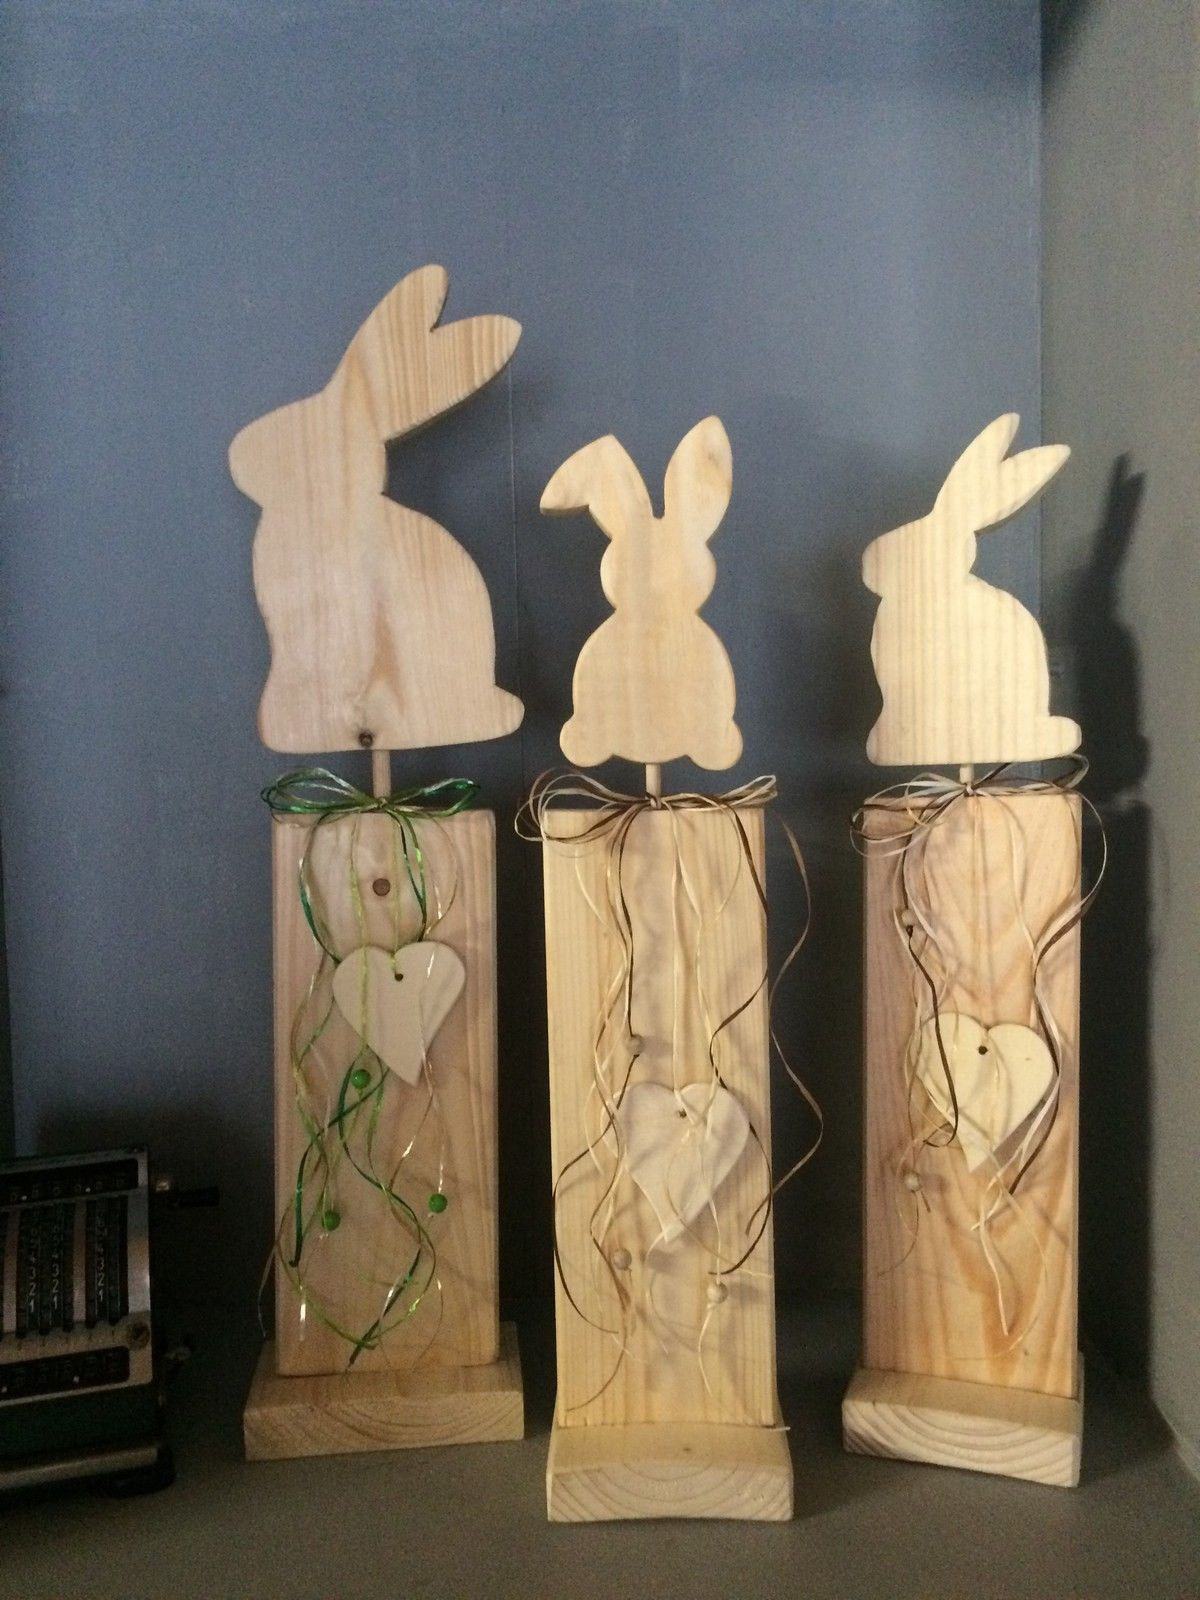 shabby chic hase ostern deko ausverkauf handarbeit osterhasen aus holz pinterest. Black Bedroom Furniture Sets. Home Design Ideas